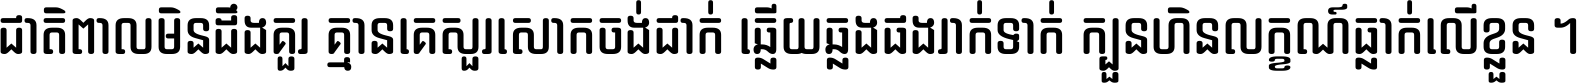 Khmer OS Dangrek